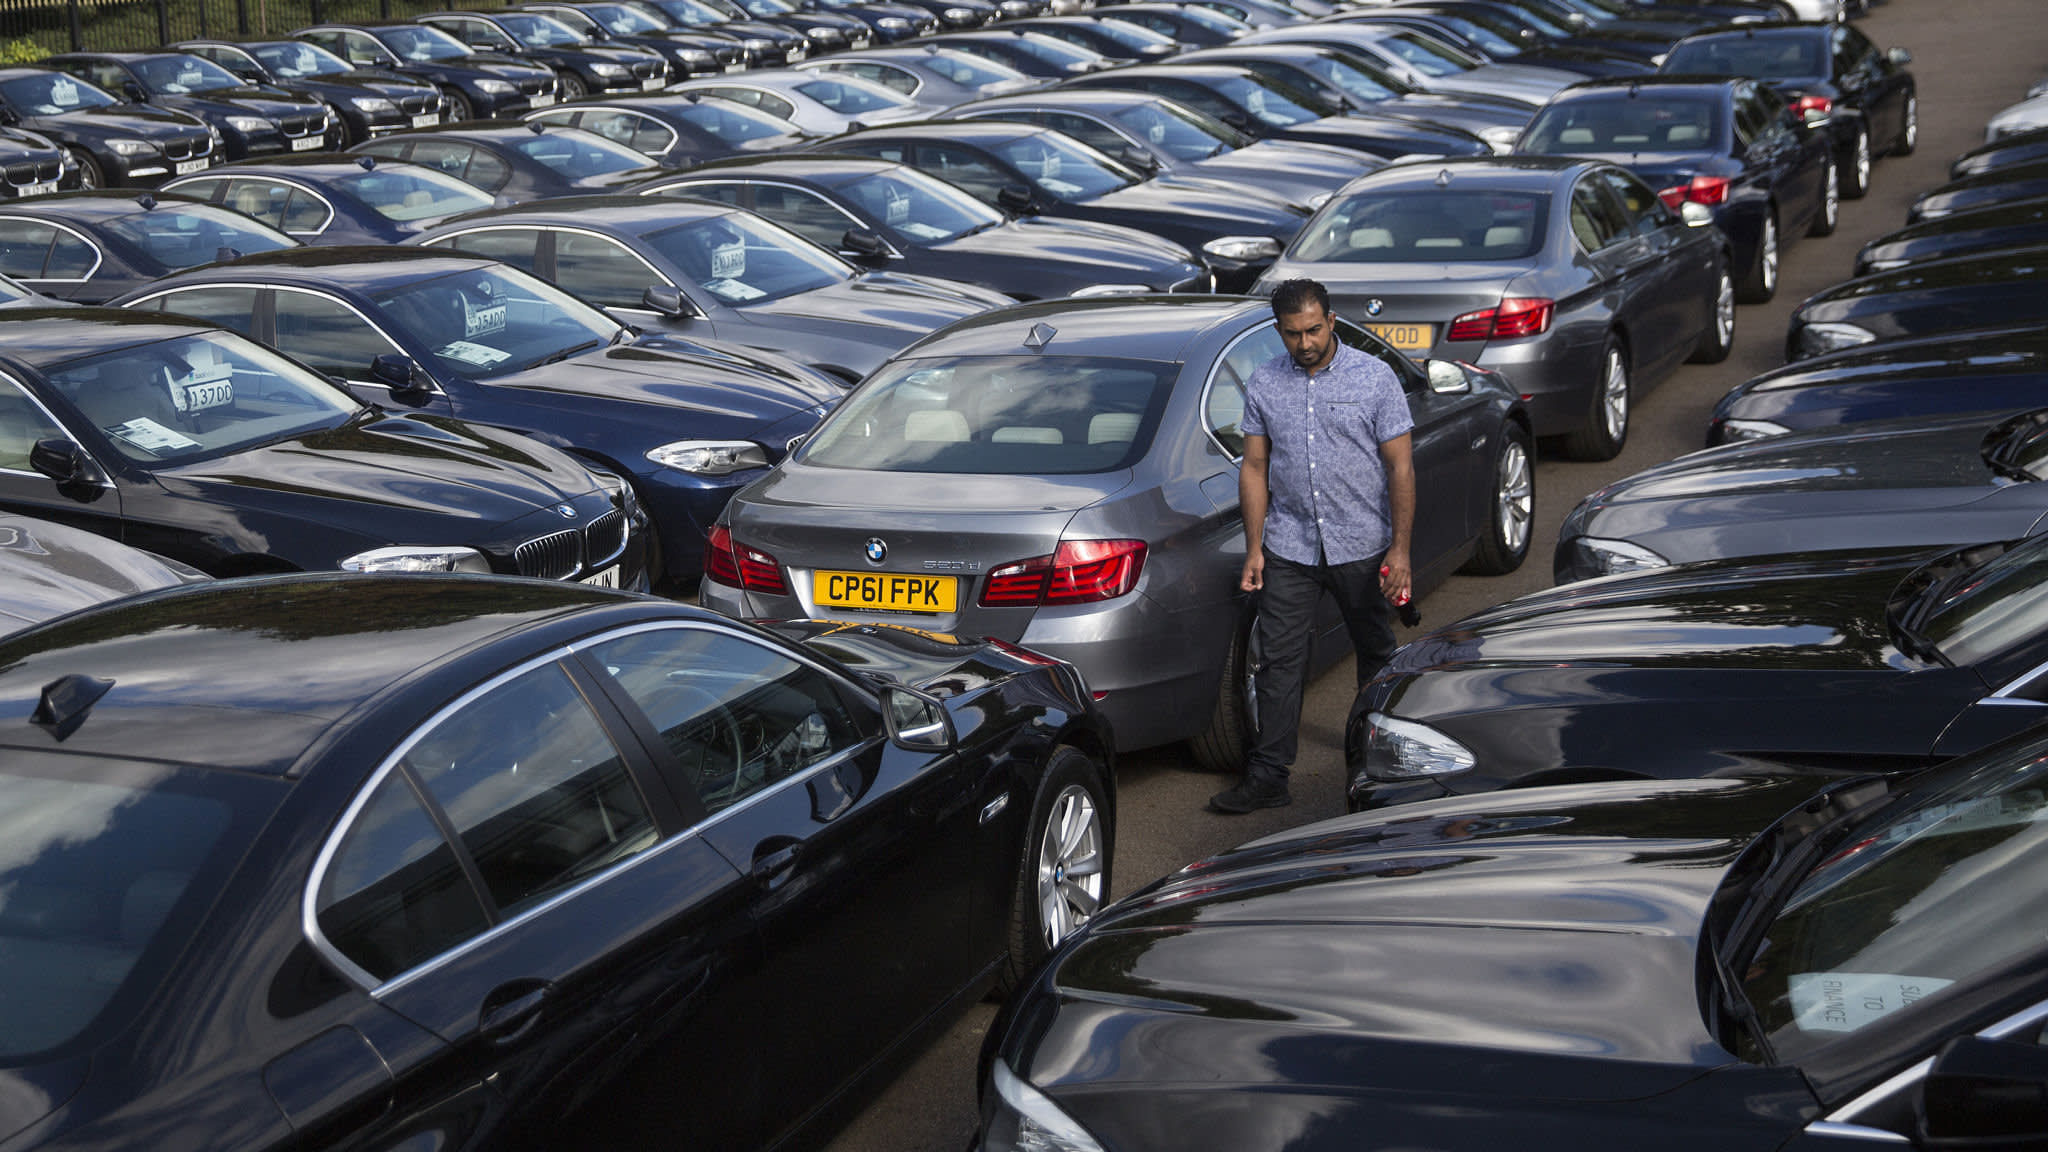 UK car production falls 14% as sales slide | Financial Times